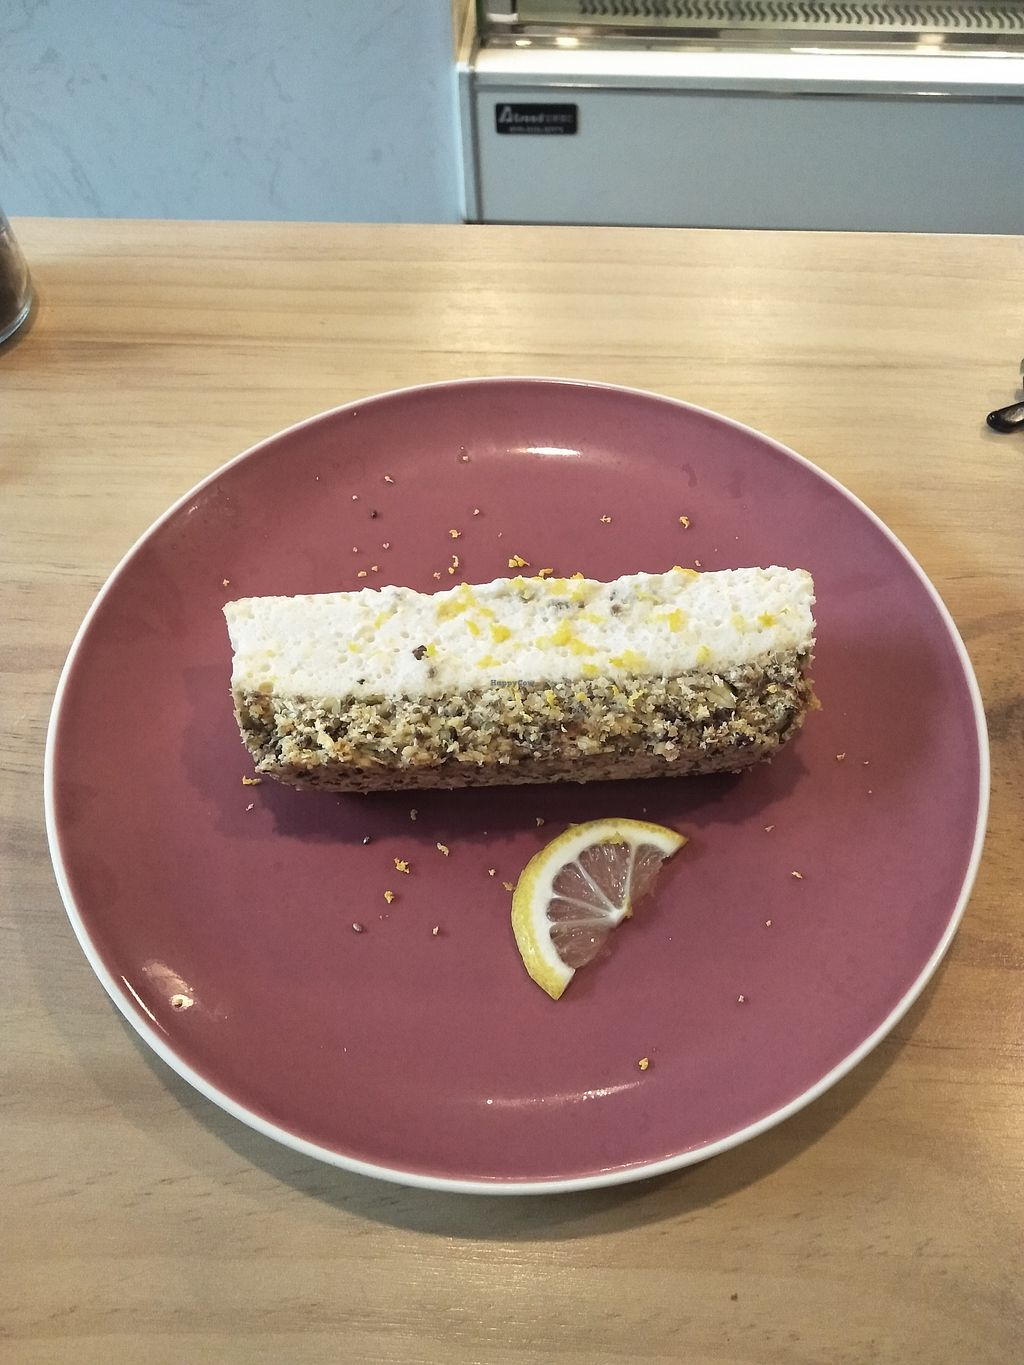 """Photo of Graze  by <a href=""""/members/profile/MichaelRobinson"""">MichaelRobinson</a> <br/>Vegan lemon cheesecake <br/> March 25, 2018  - <a href='/contact/abuse/image/115556/375773'>Report</a>"""